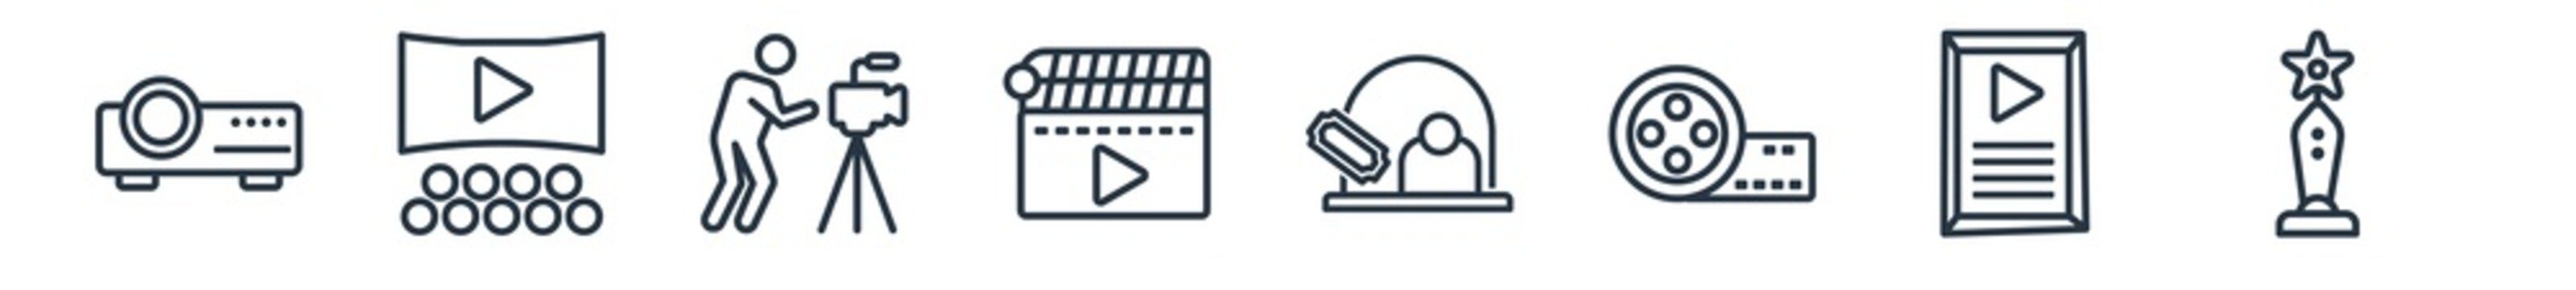 linear set of cinema outline icons. line vector icons such as image projector, film viewer, cameraman, movie clapper, box office, trophy with a star vector illustration.